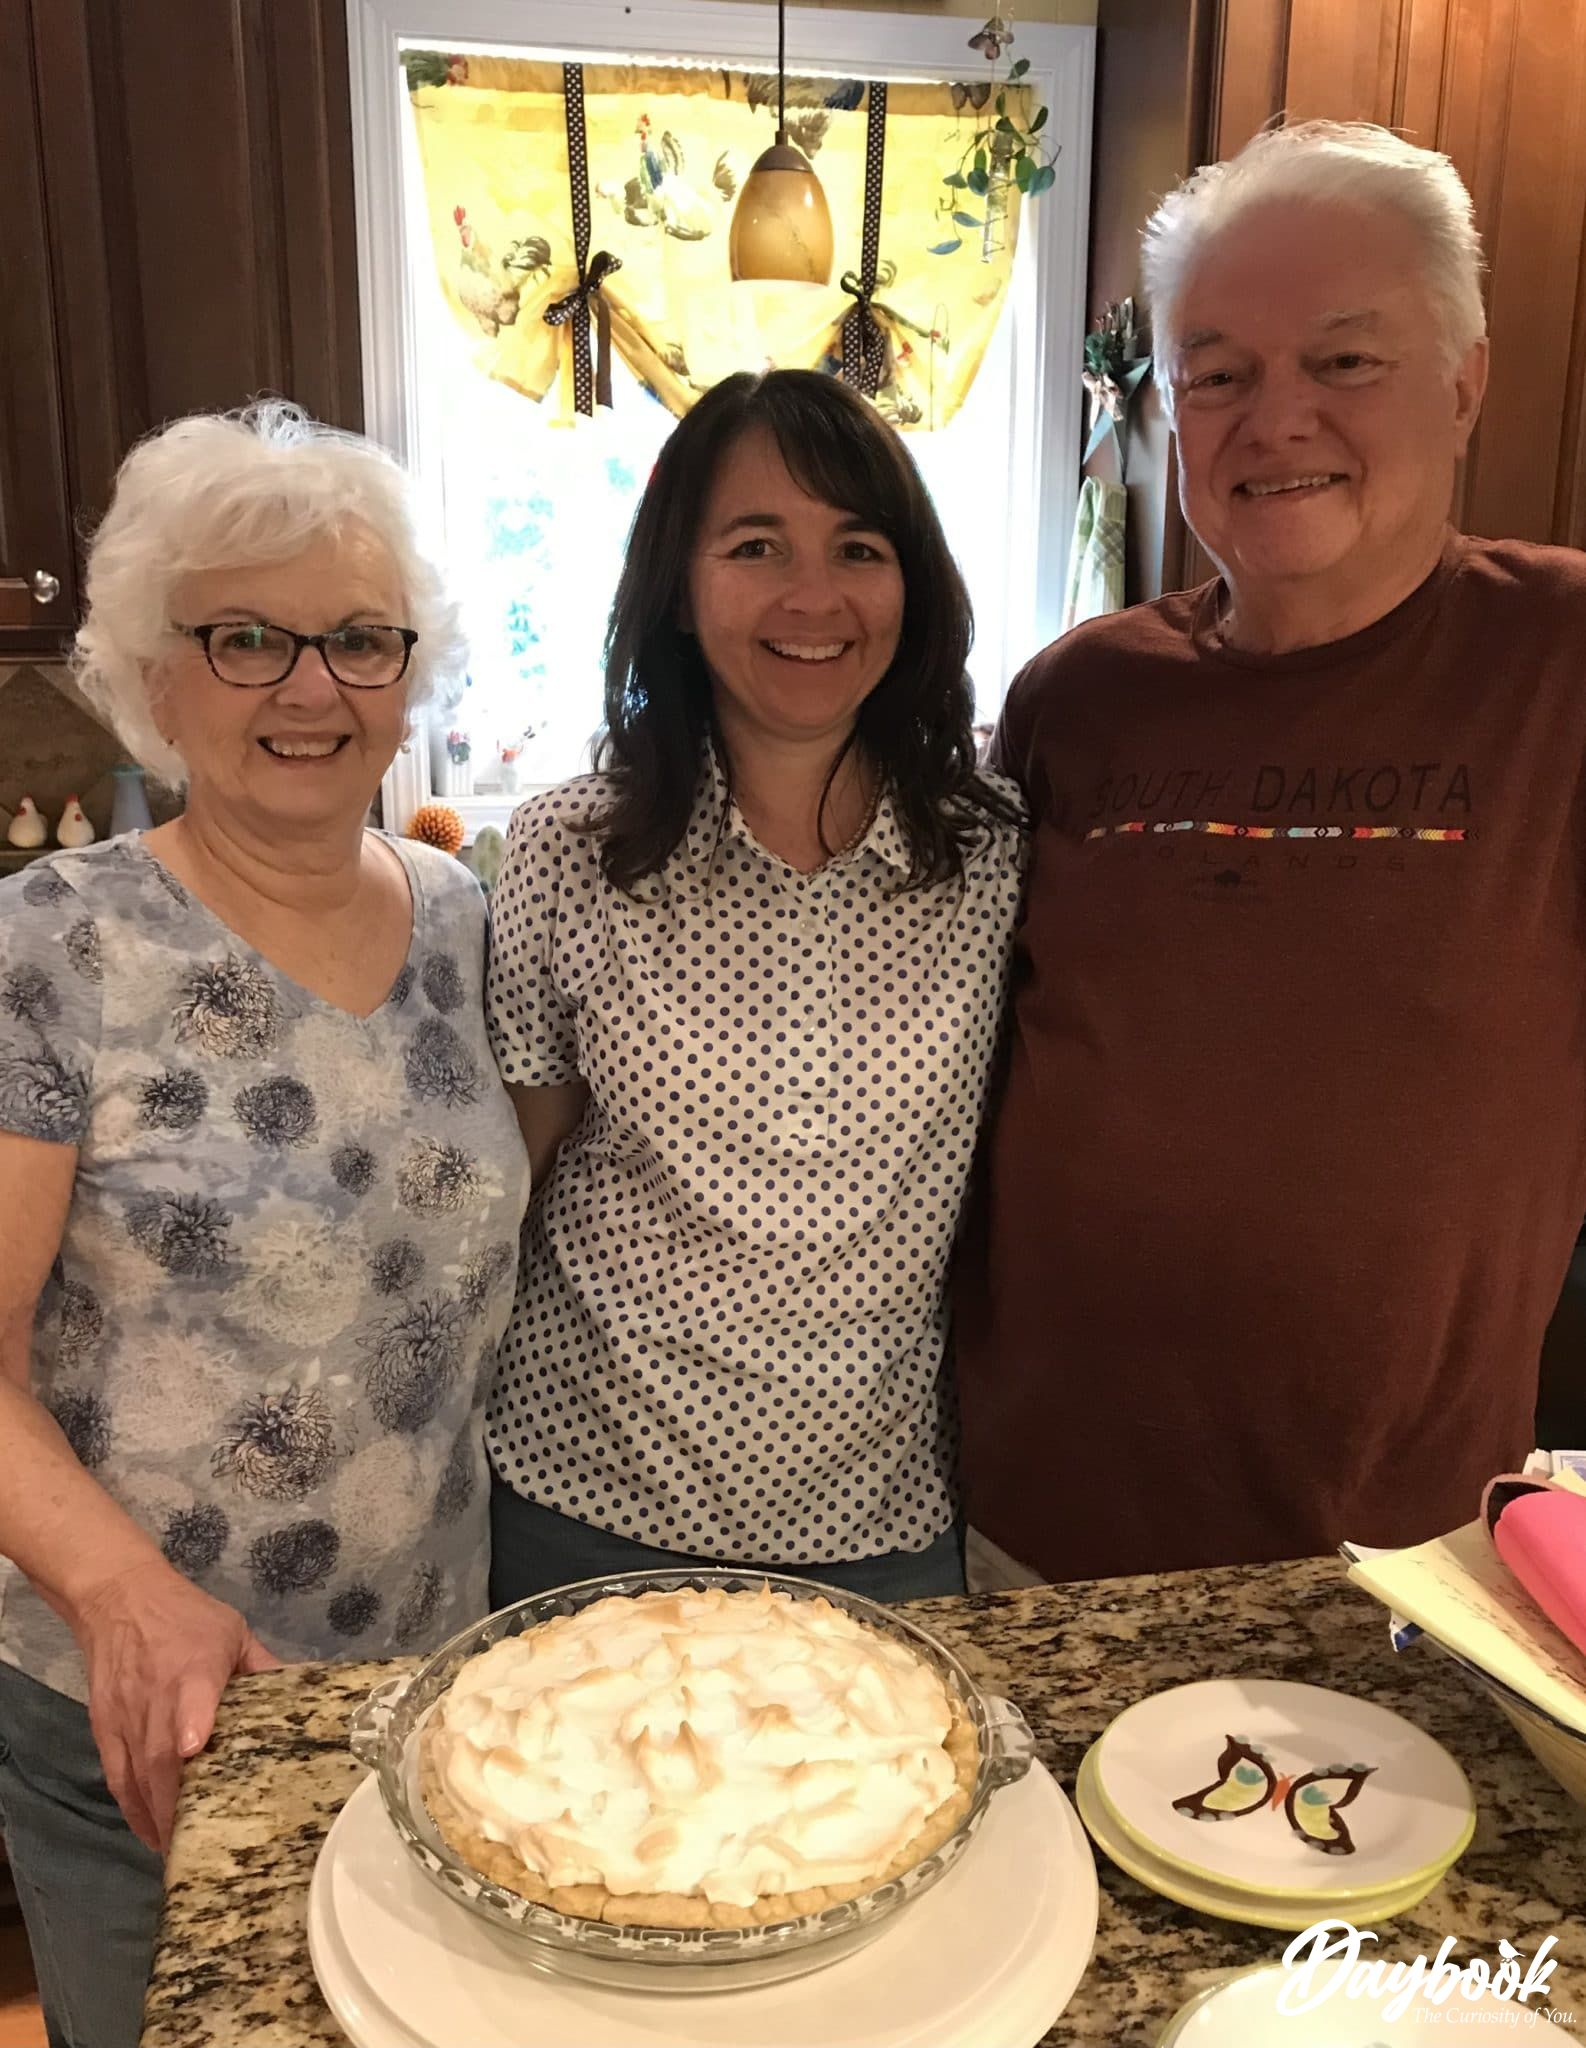 mom daughter and father in a kitchen